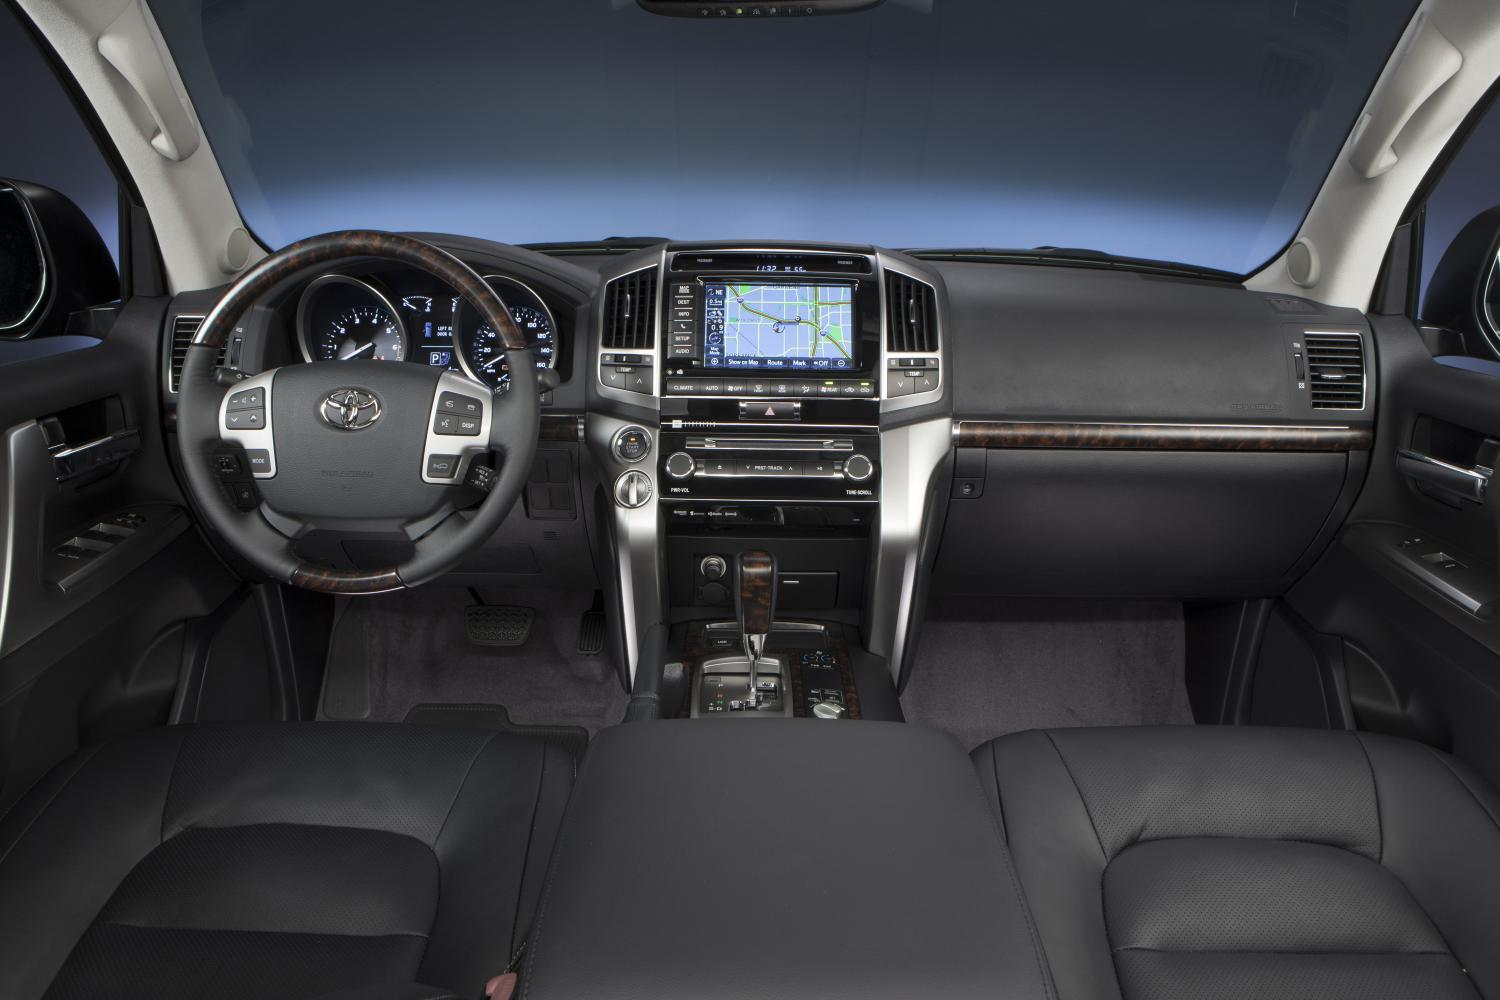 Toyota Tacoma Evolution >> 2014 Toyota Land Cruiser US-Specs Released - autoevolution